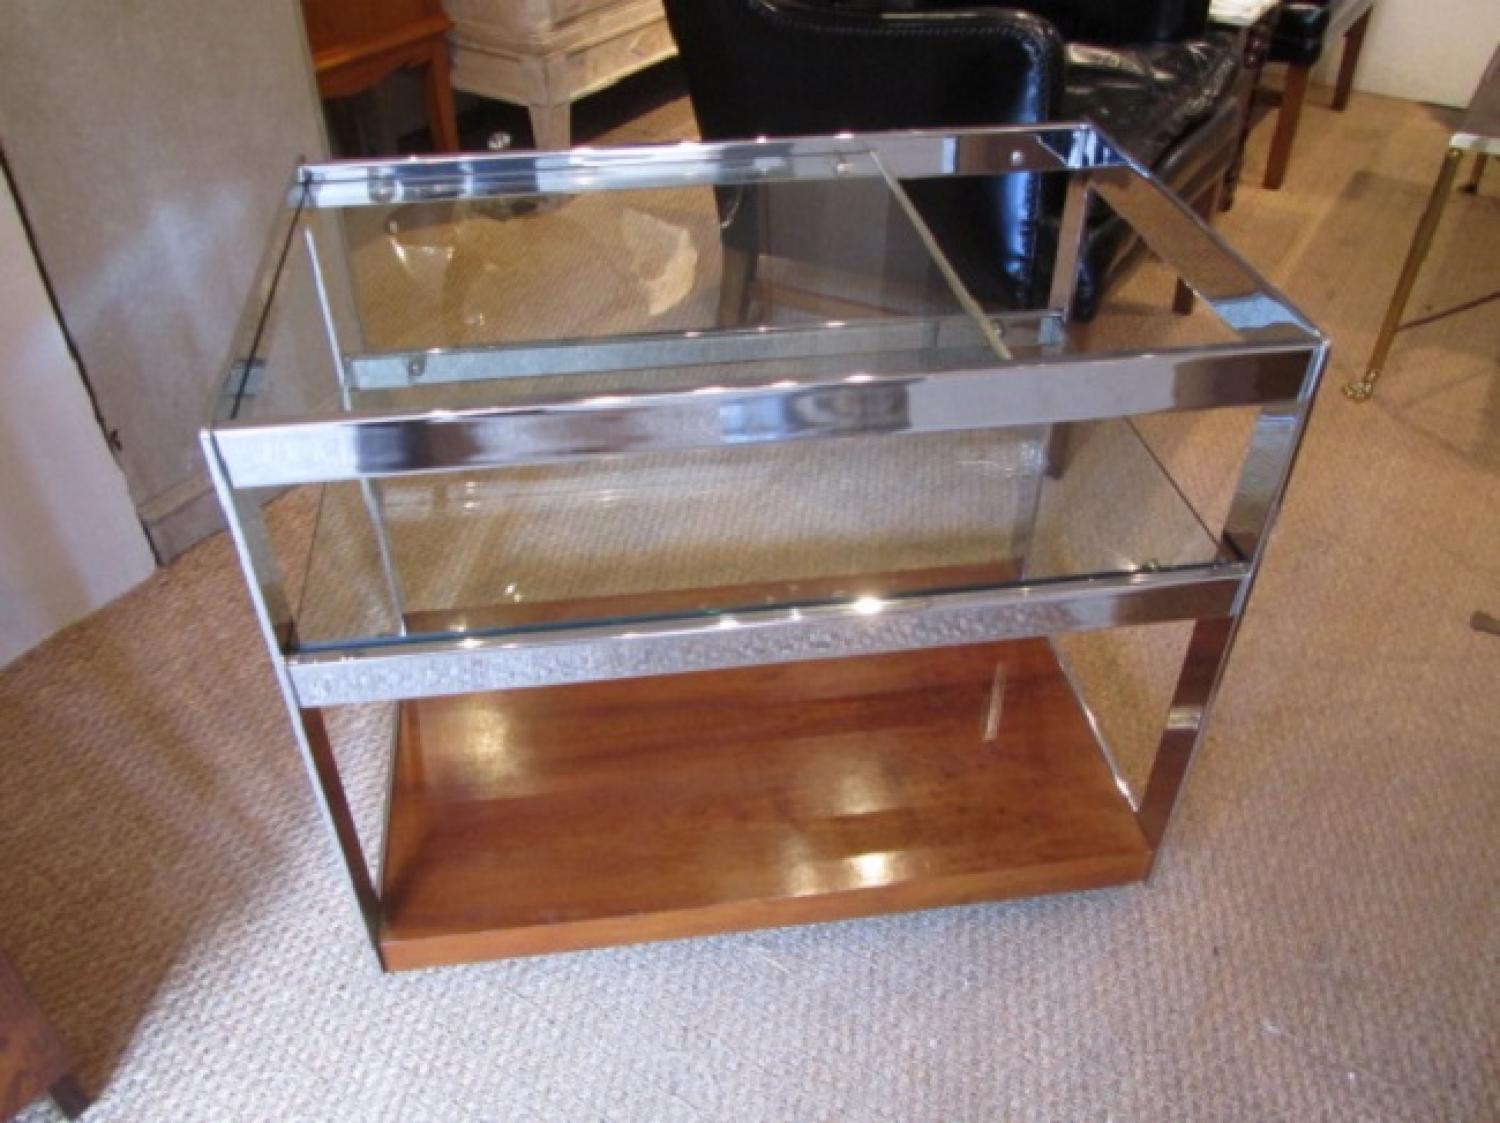 A rosewood and chrome drinks cart trolley